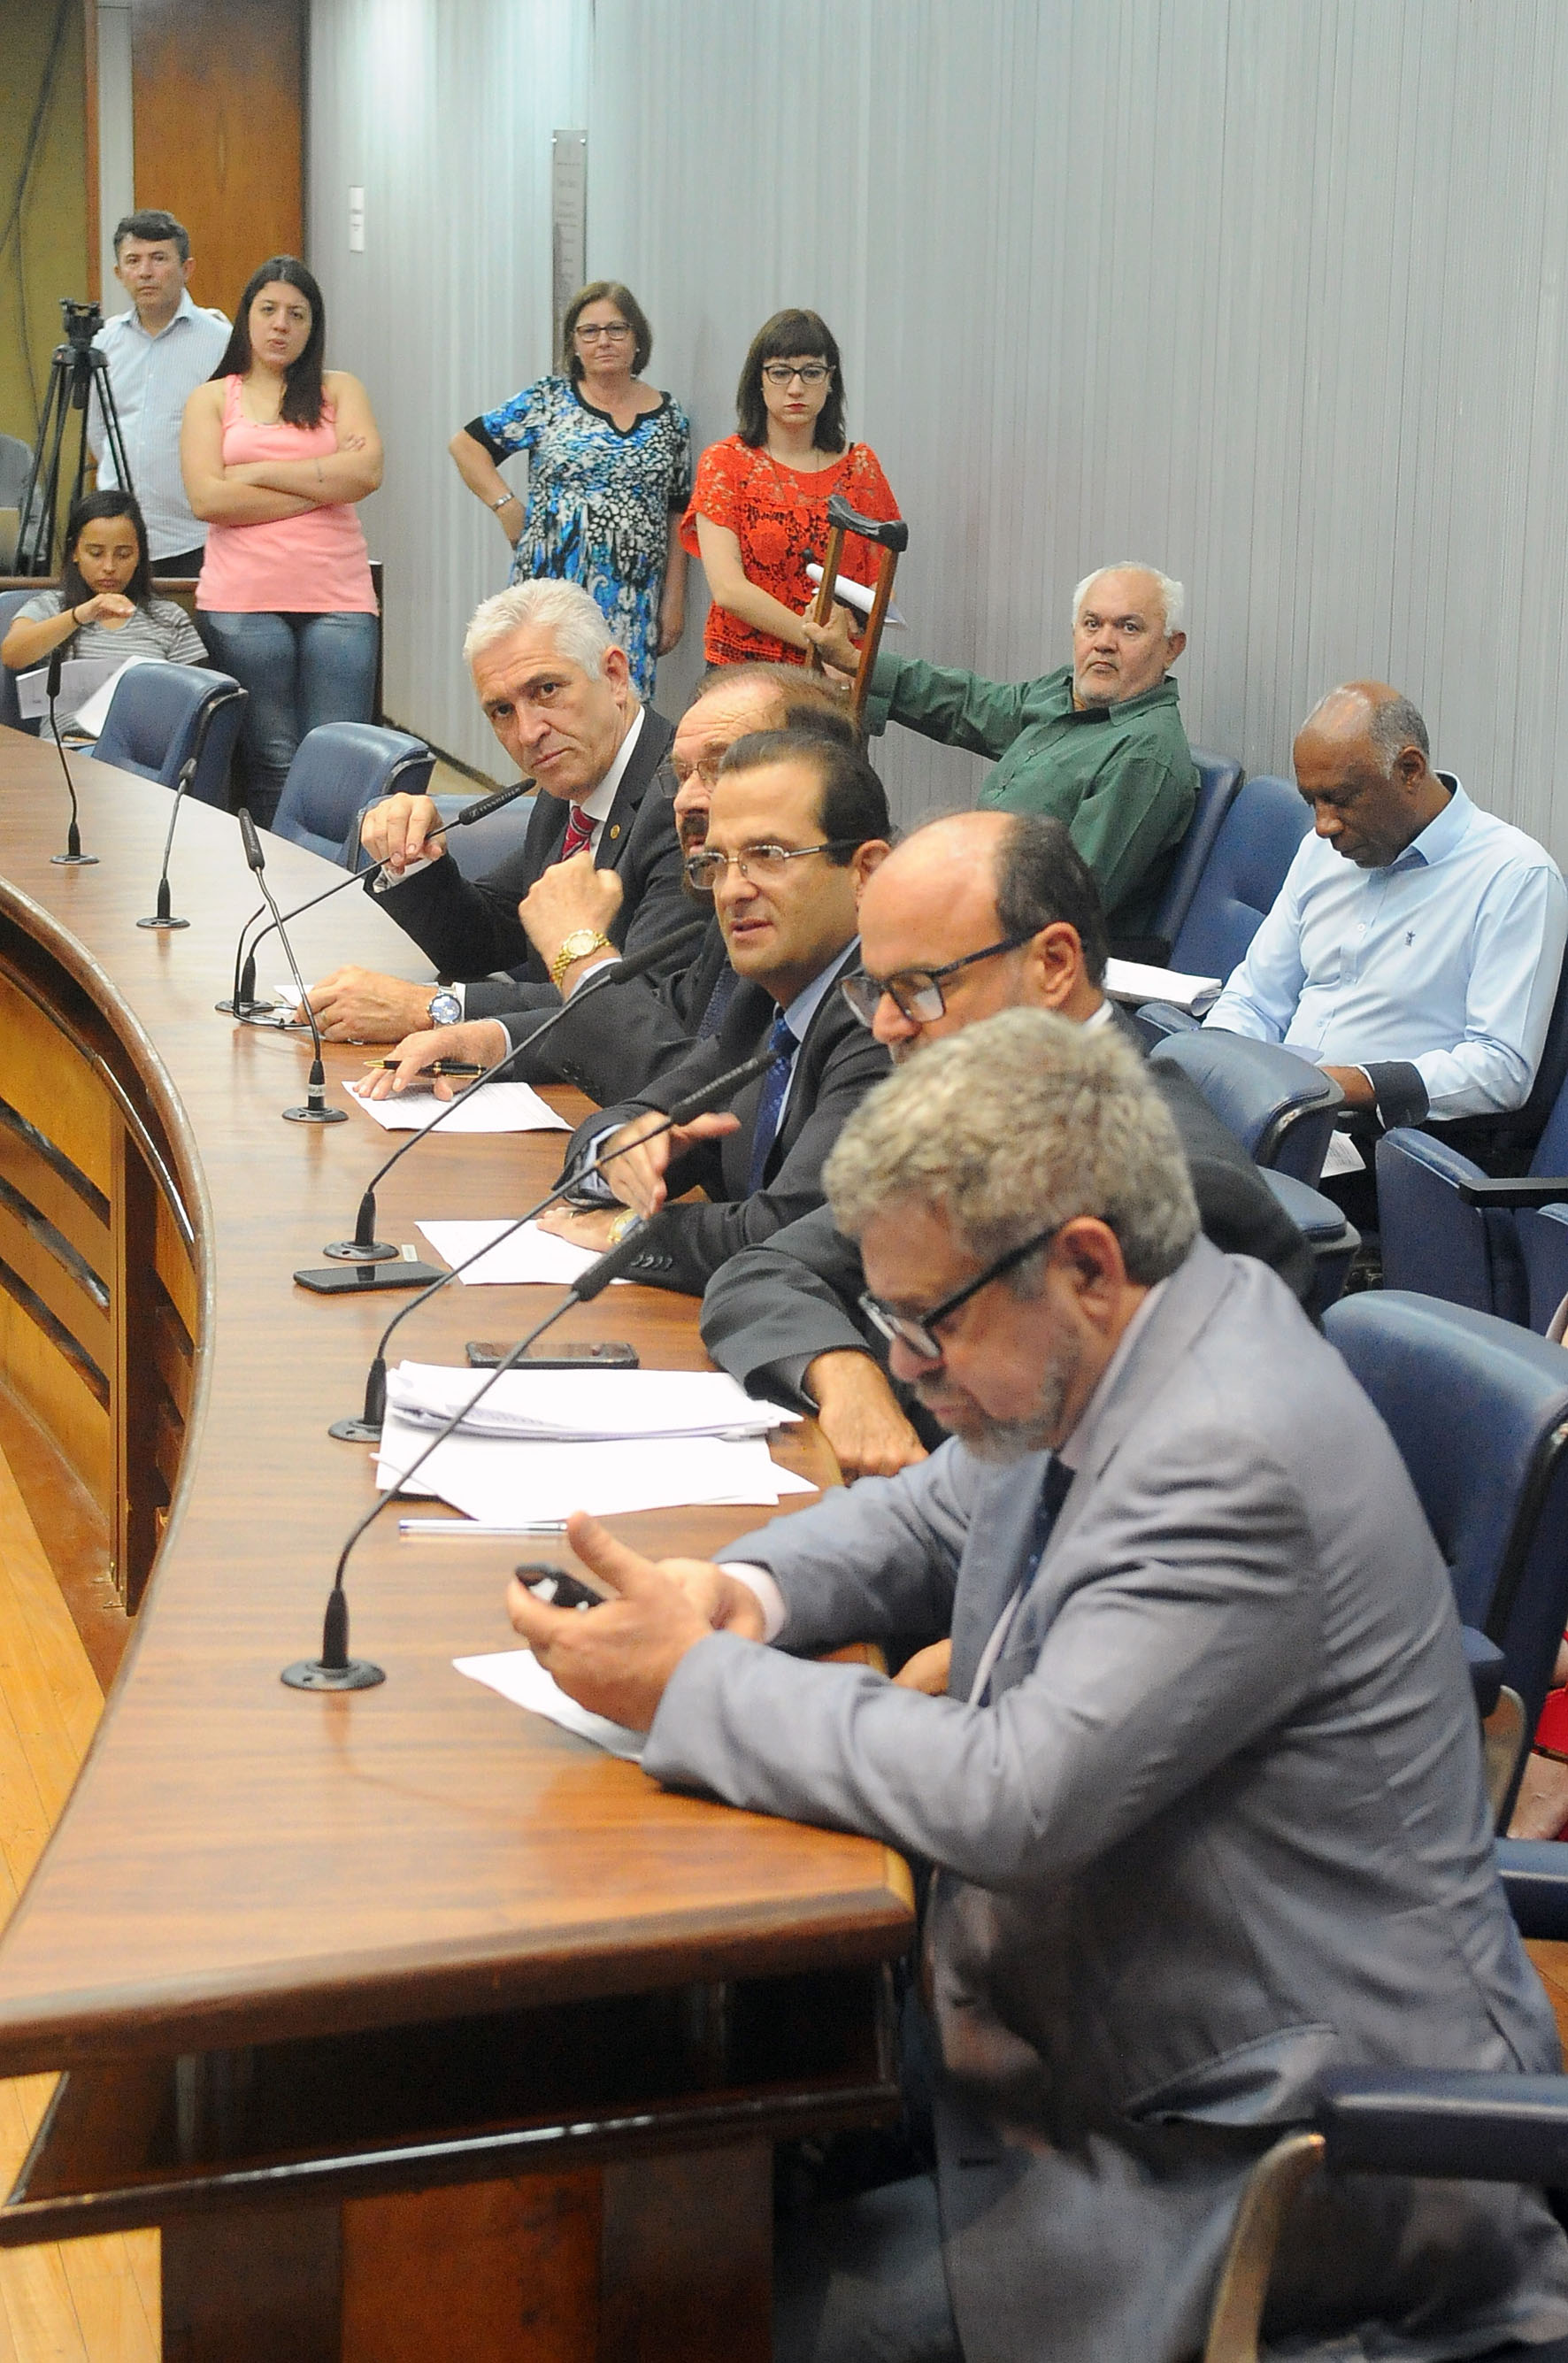 Parlamentares na comissão <a style='float:right' href='https://www3.al.sp.gov.br/repositorio/noticia/N-12-2018/fg228643.jpg' target=_blank><img src='/_img/material-file-download-white.png' width='14px' alt='Clique para baixar a imagem'></a>